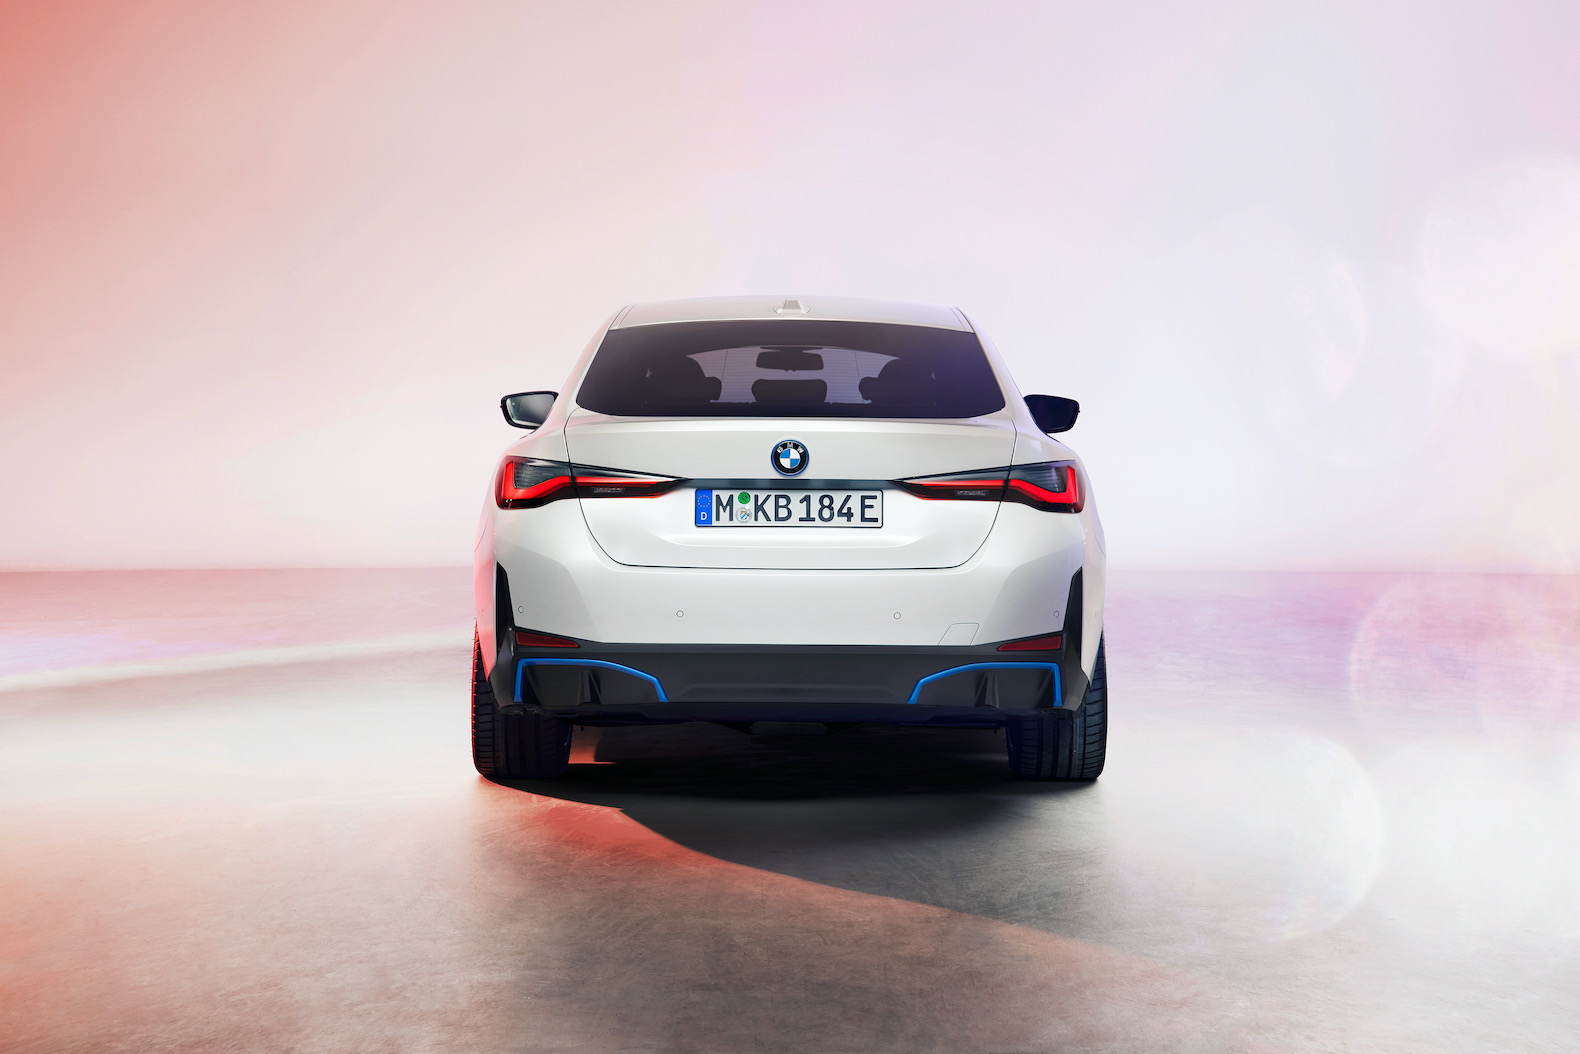 2022 bmw i4 unveiled with 532 hp and 300 mile range | the